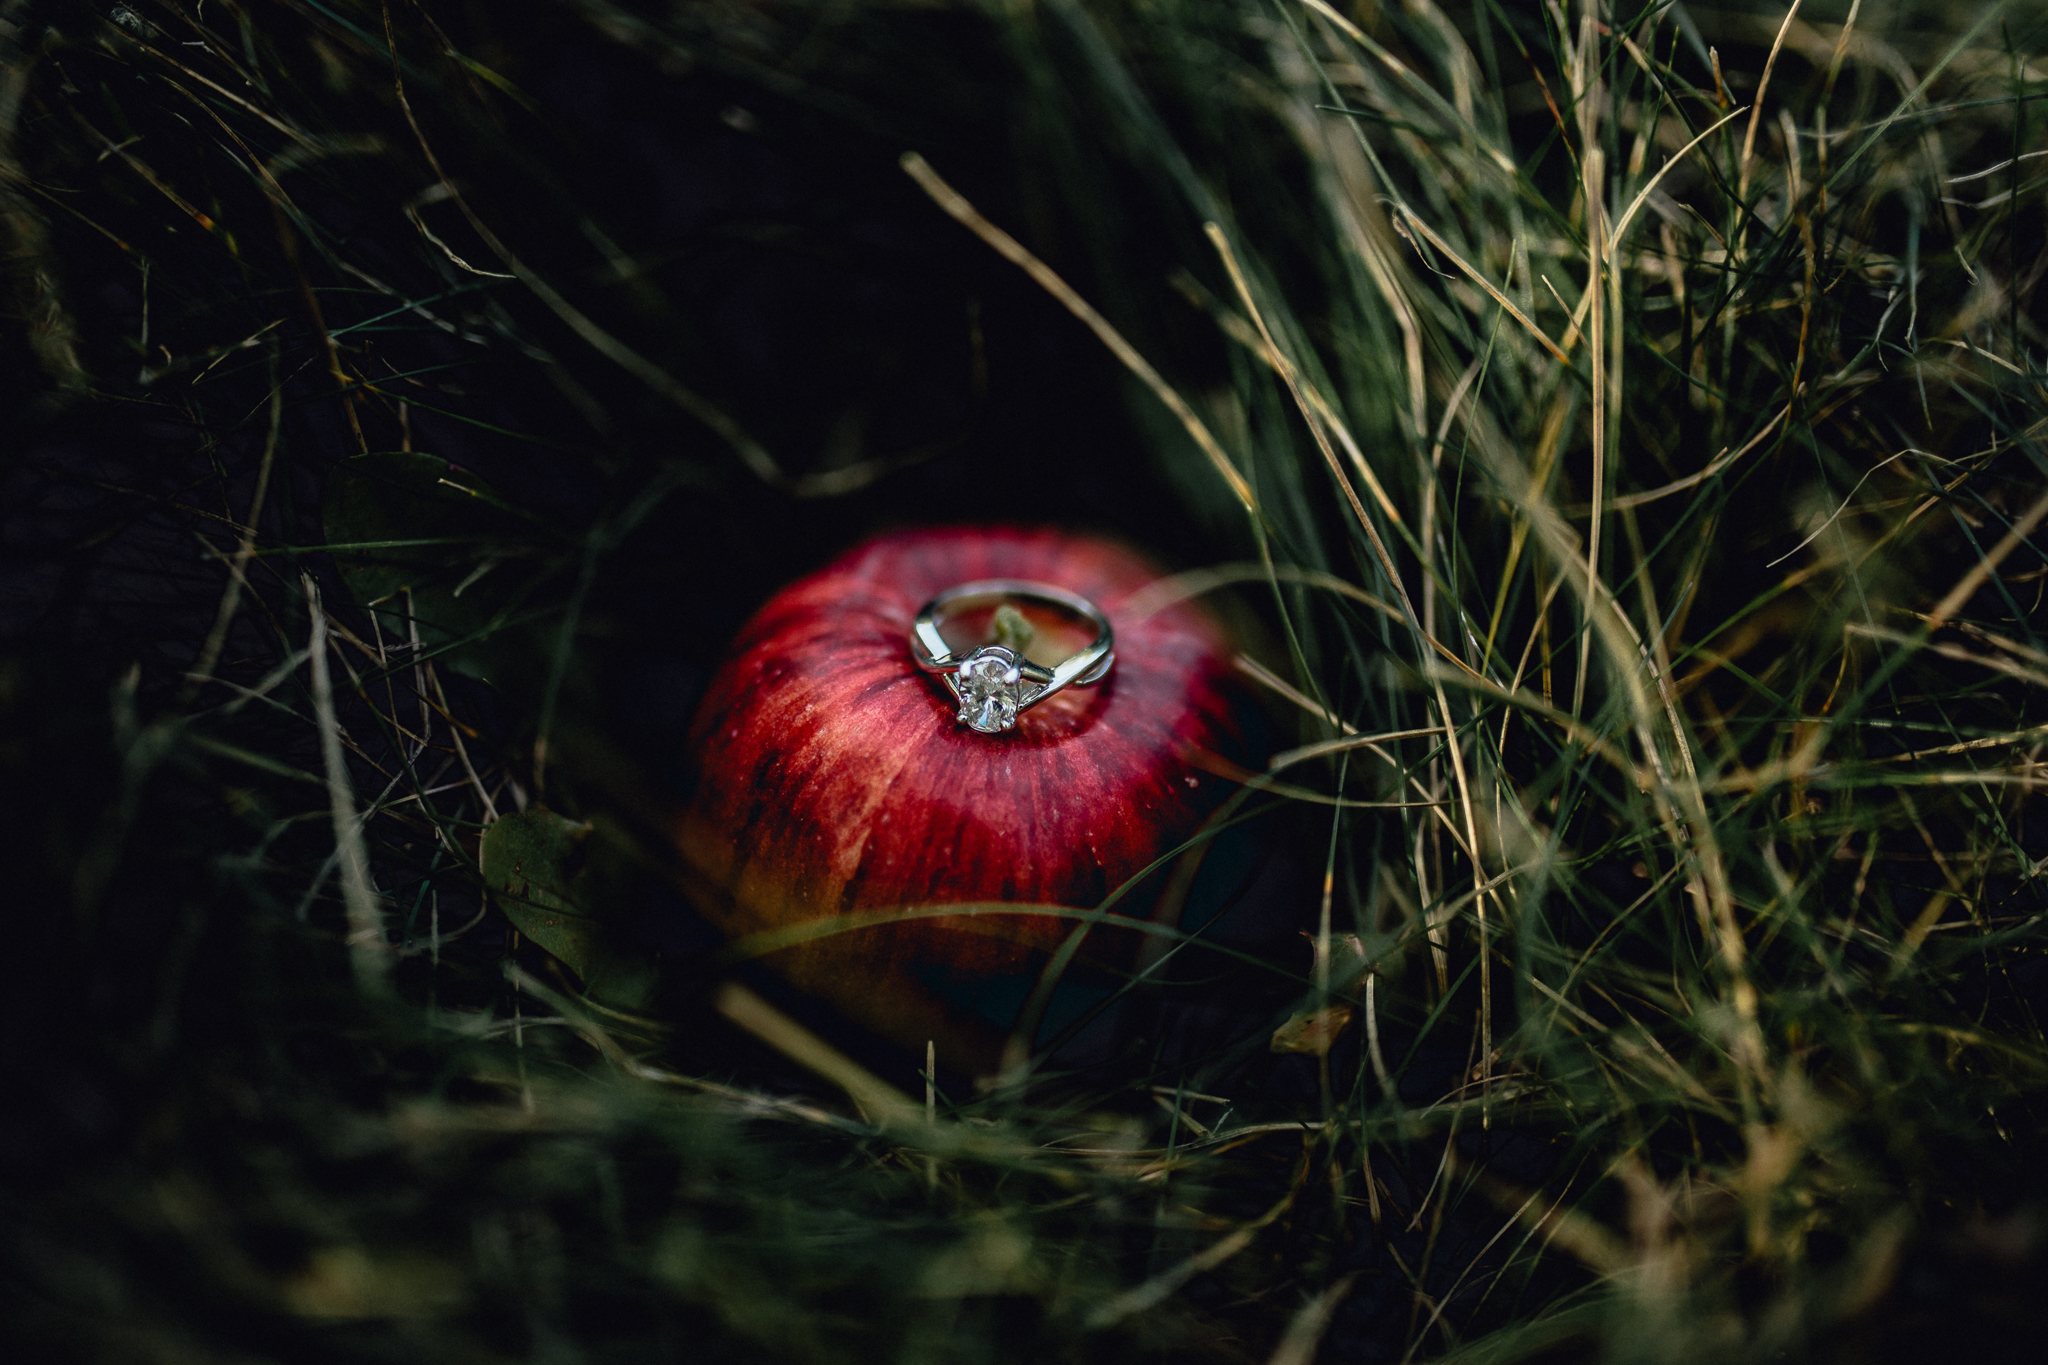 ENGAGEment-ring-on-top-of-red-apple.jpg